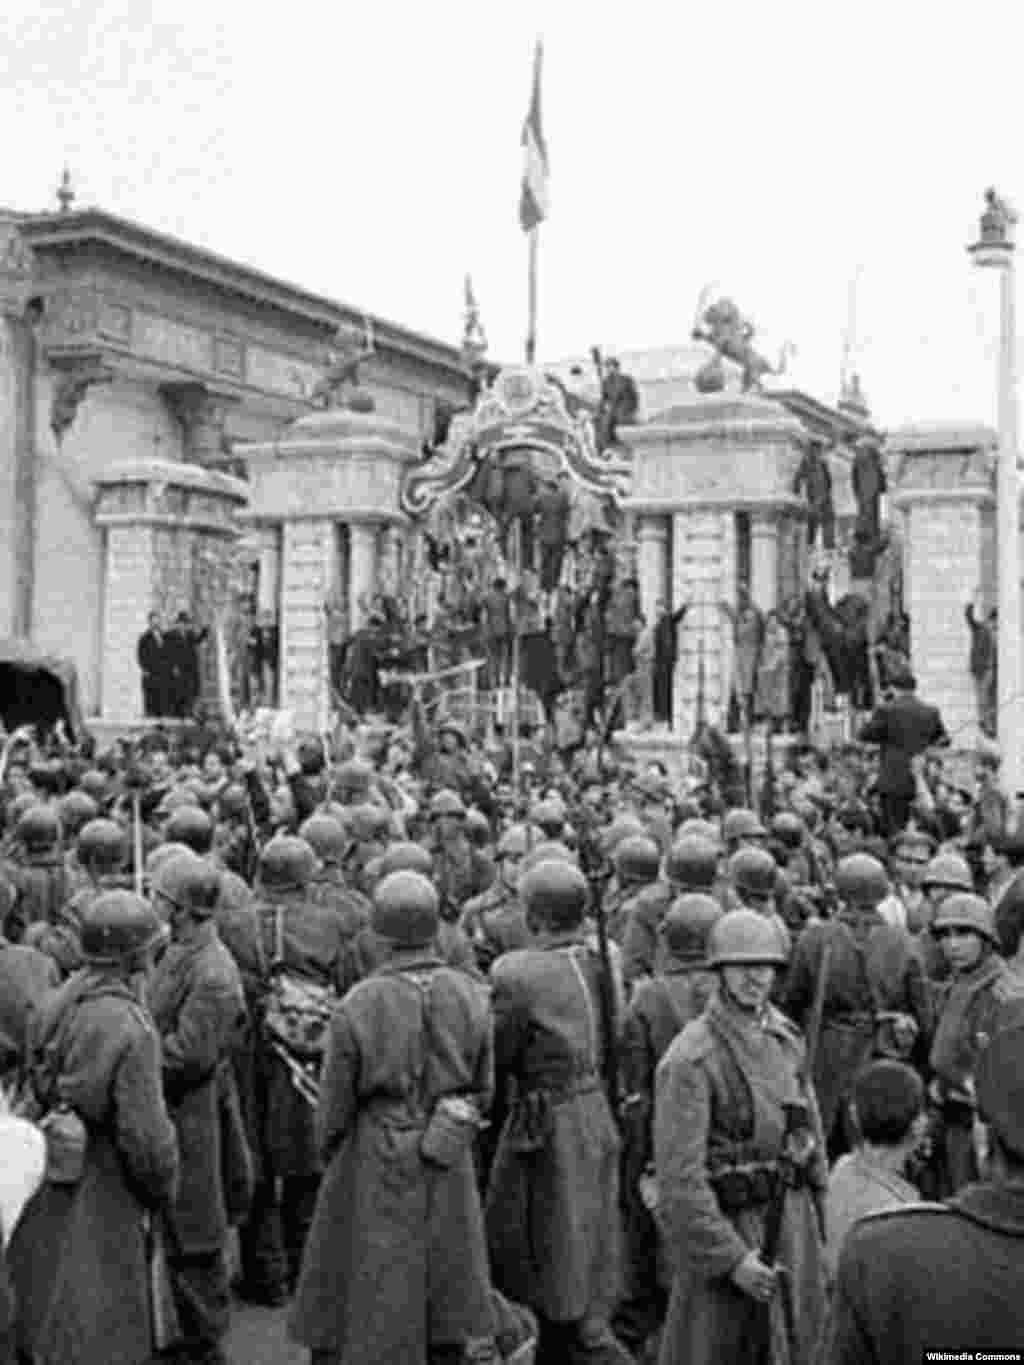 Soldiers surround the parliament building on August 19.